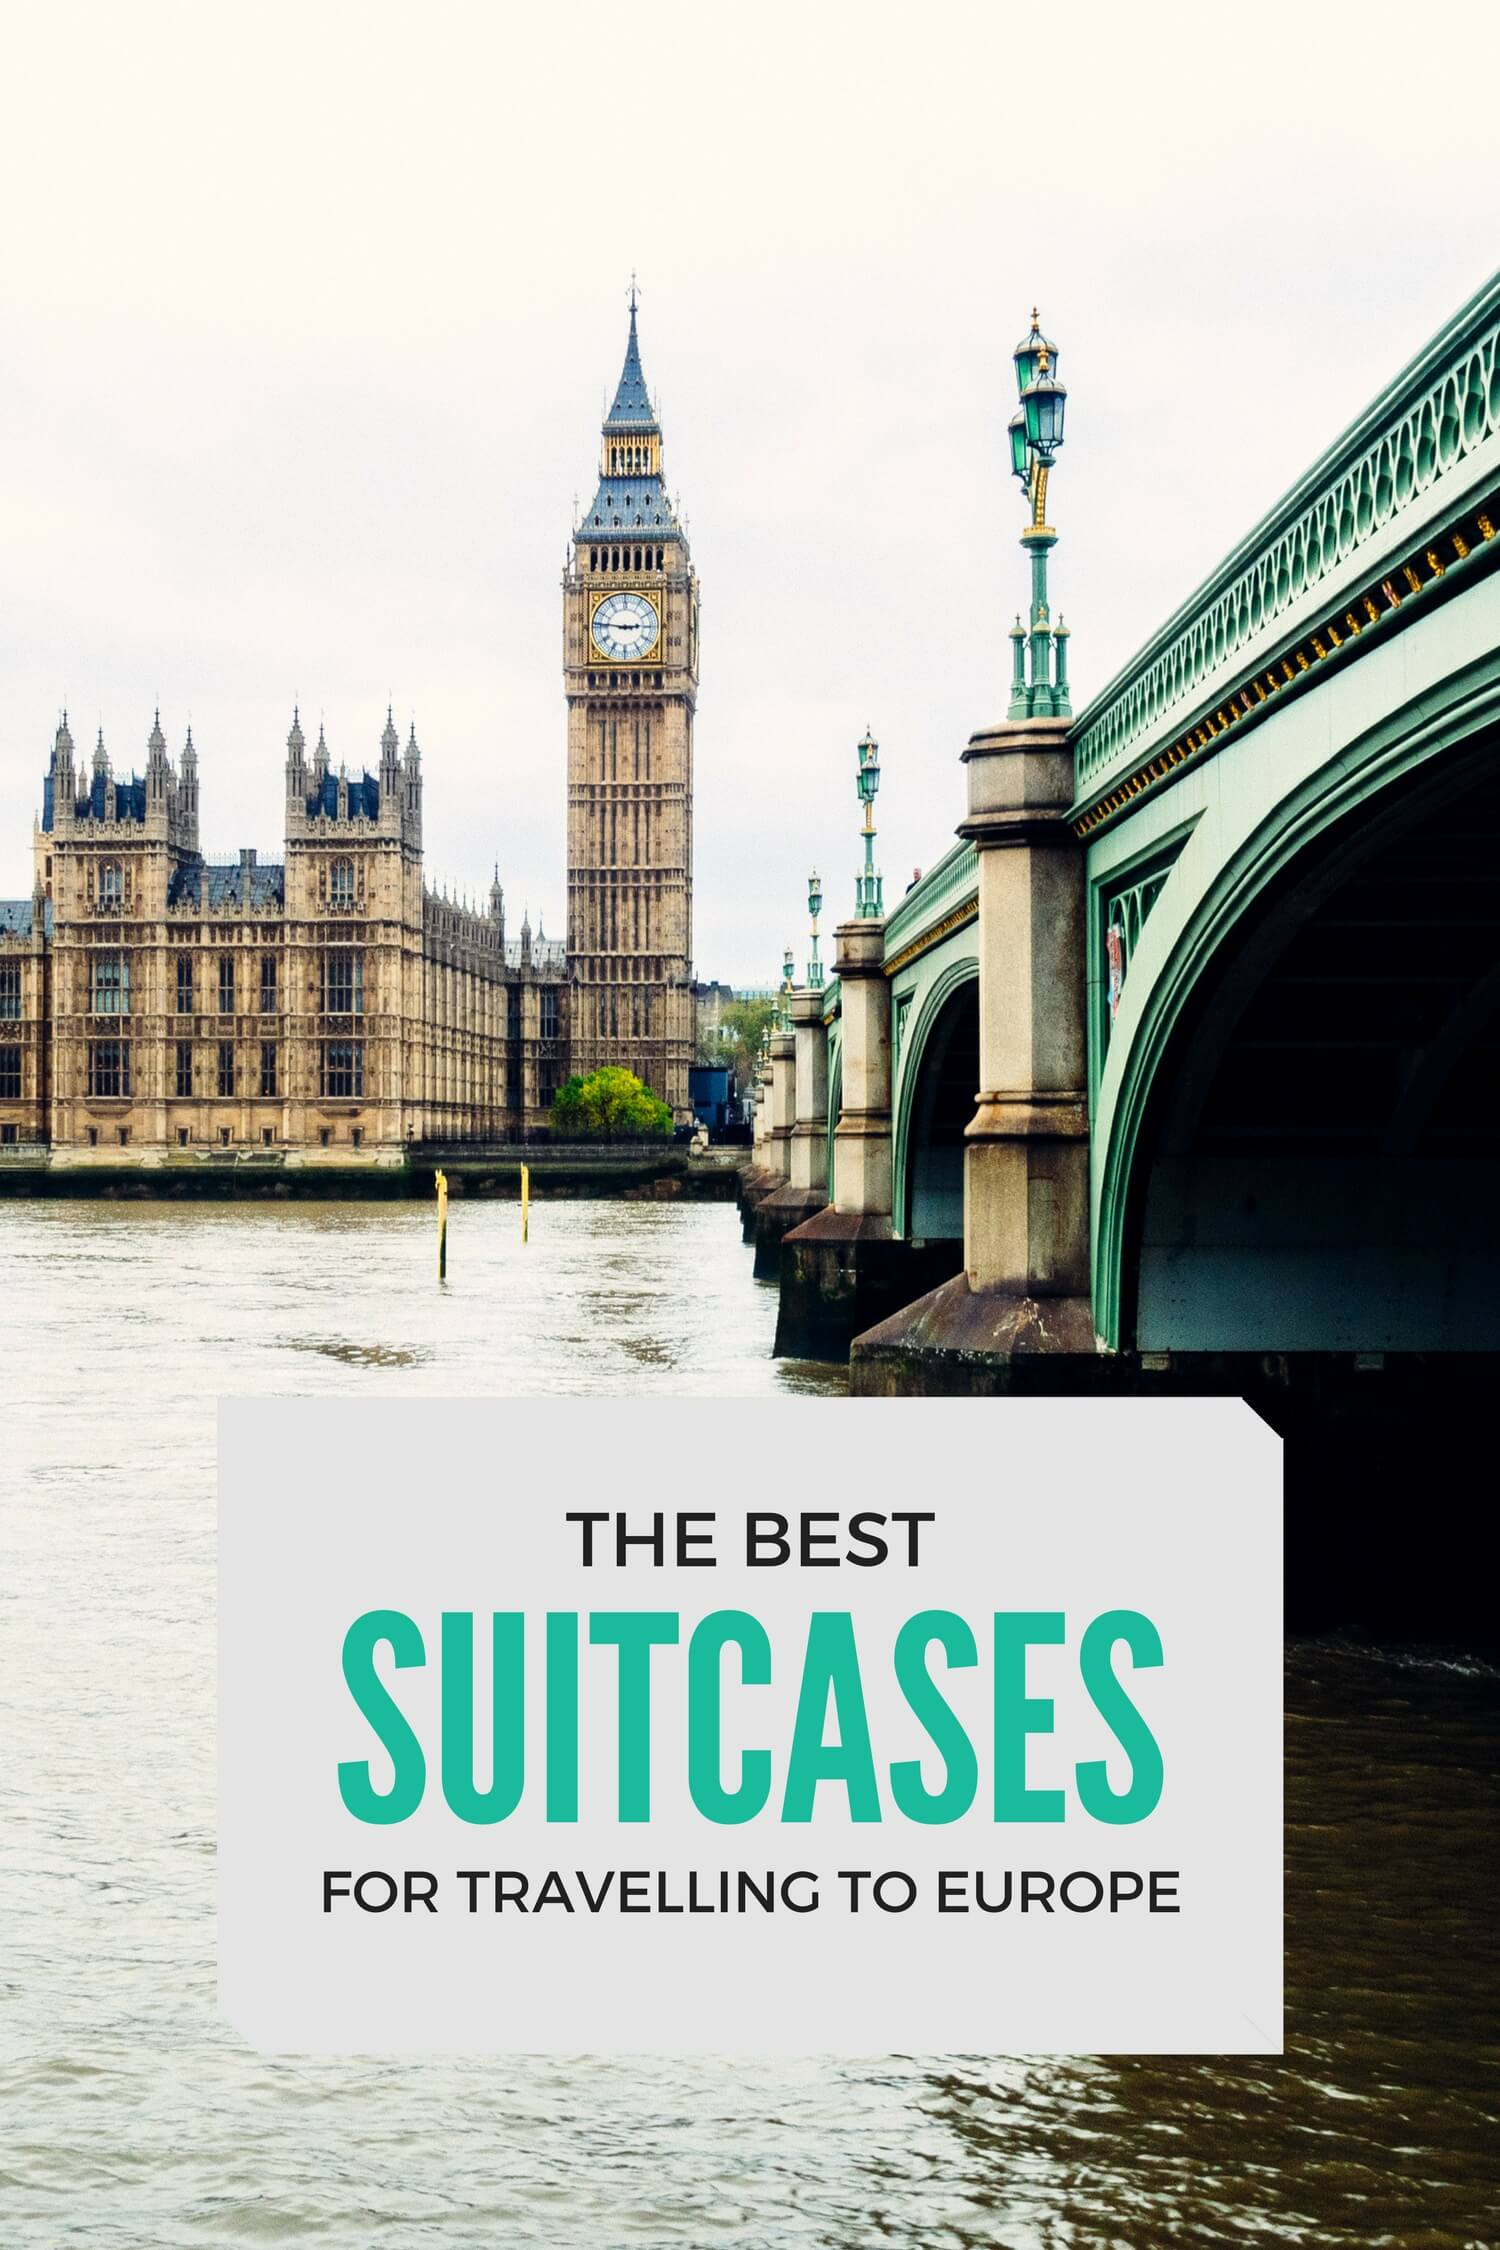 Best Suitcases for Travelling to Europe